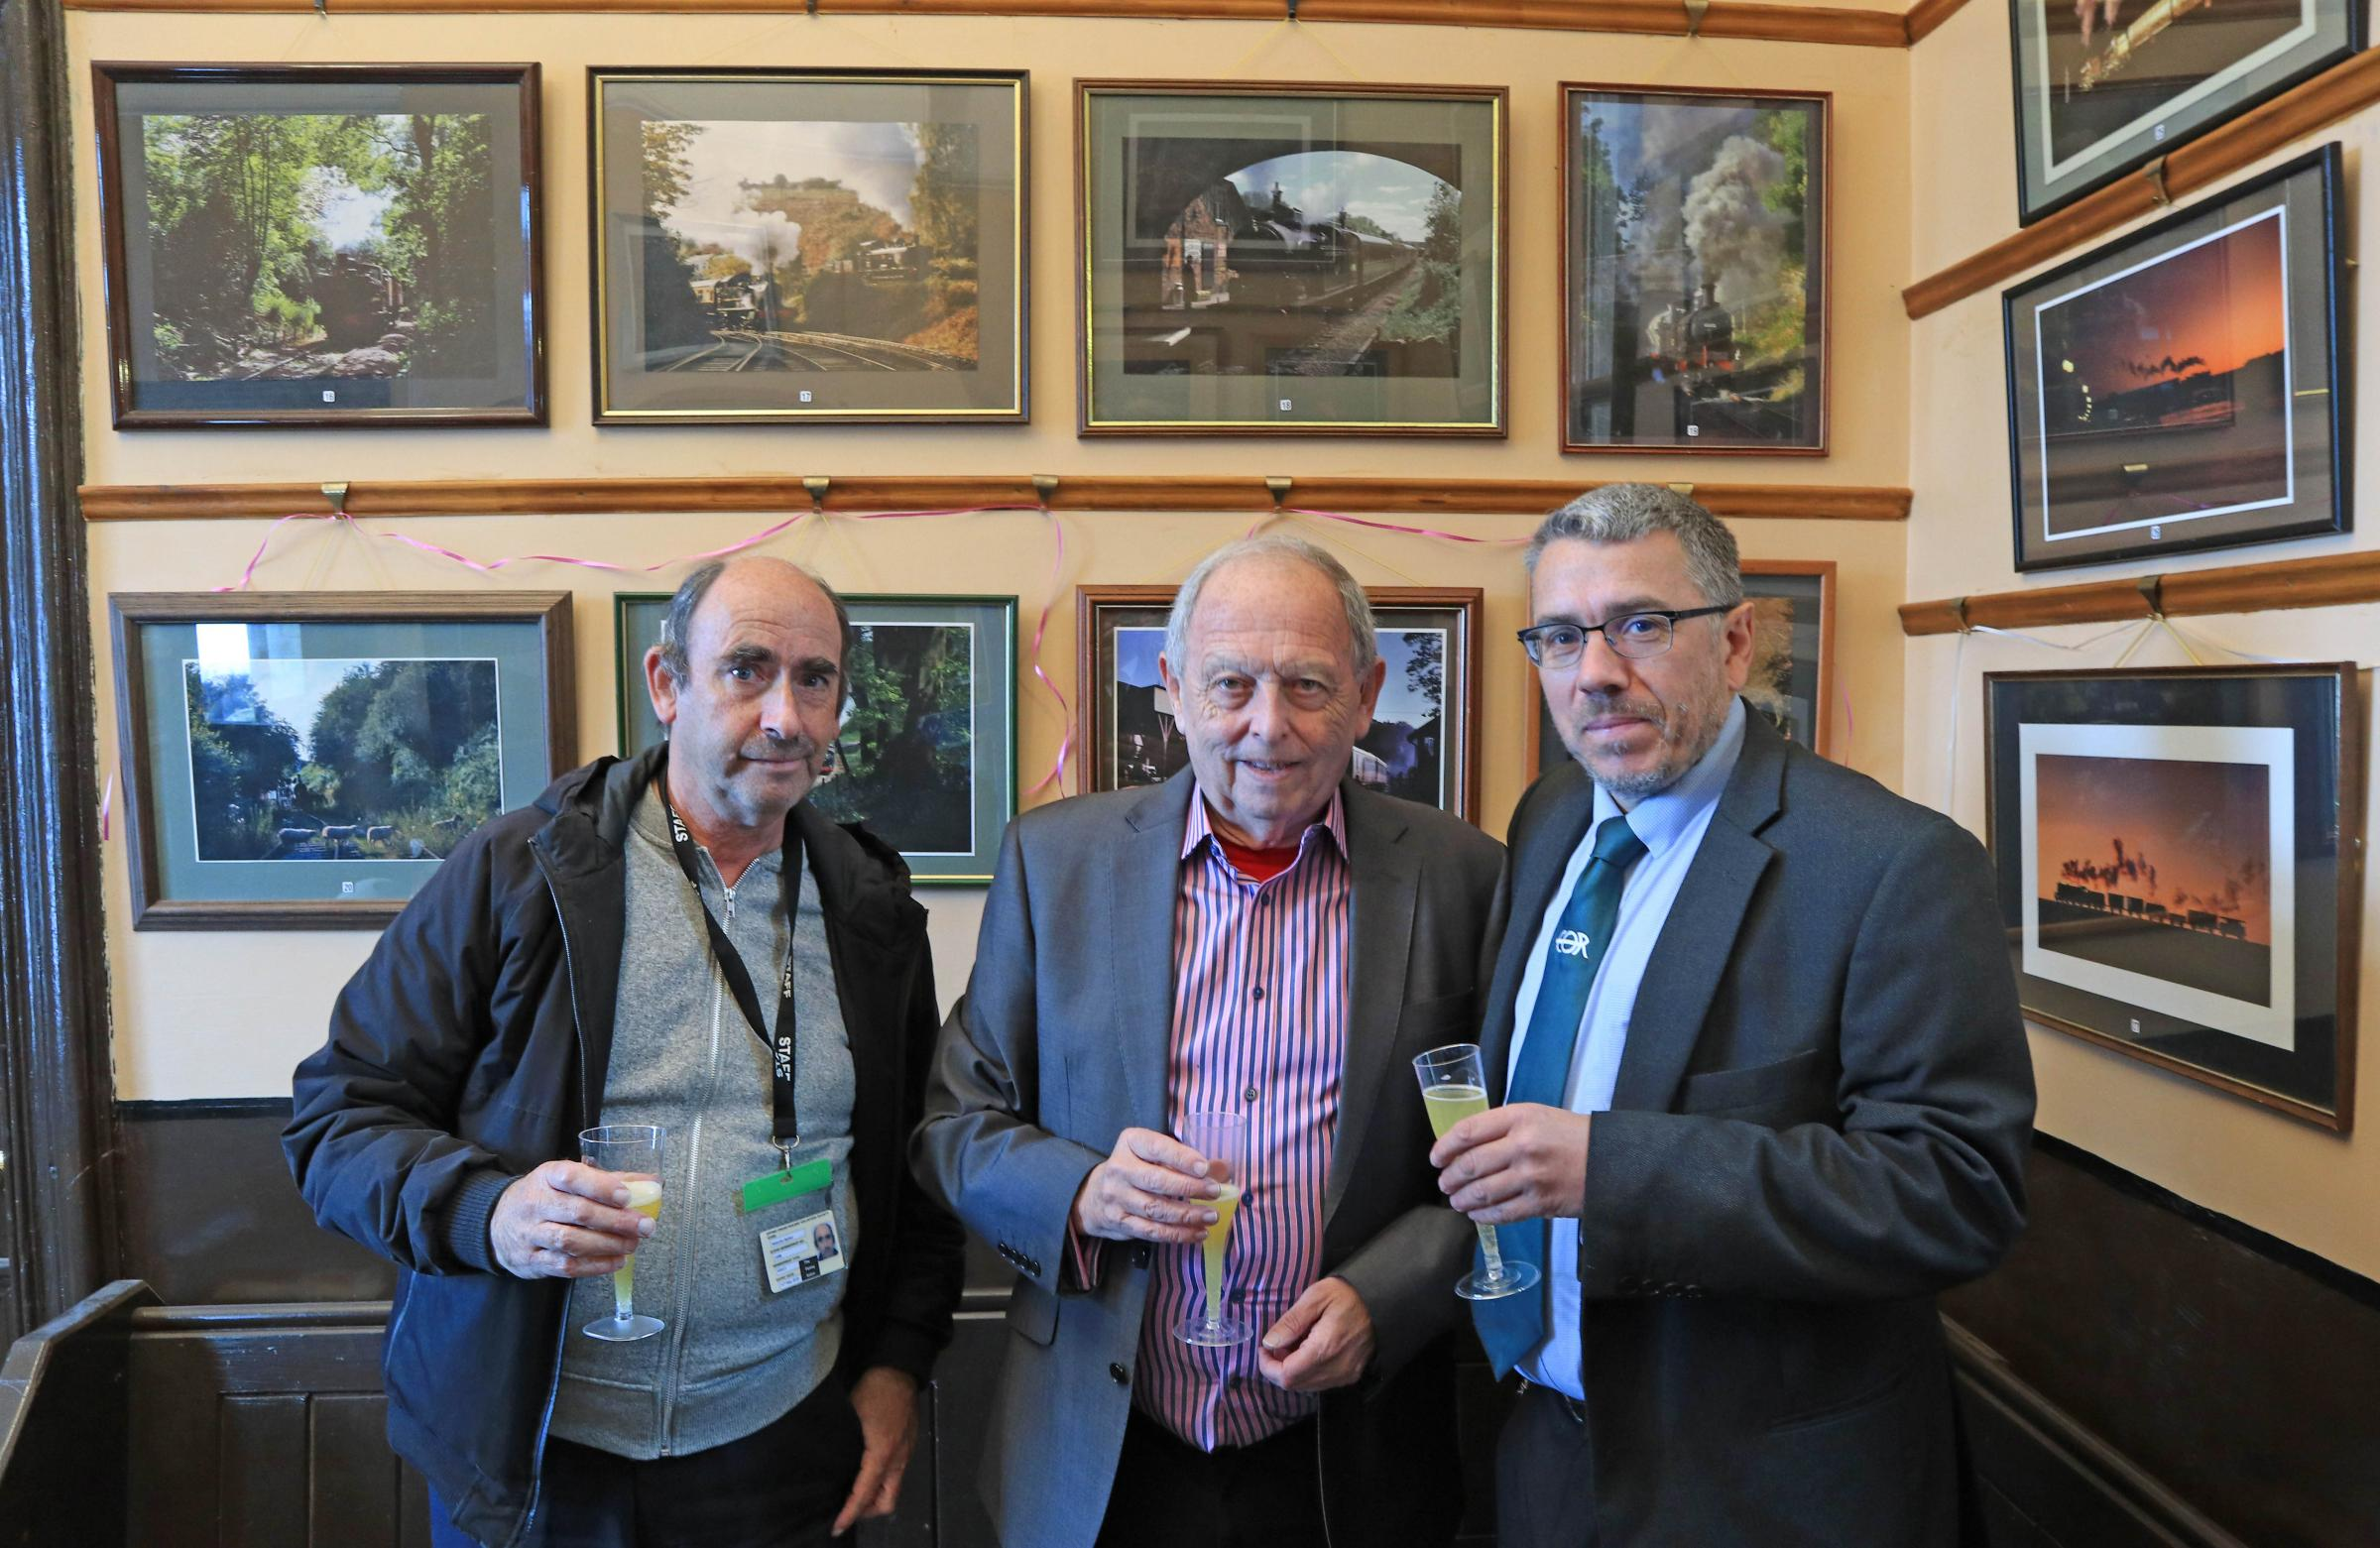 Malcolm Batten, Geoff Silcock and Dean Walton at the formal opening of the latest exhibition.